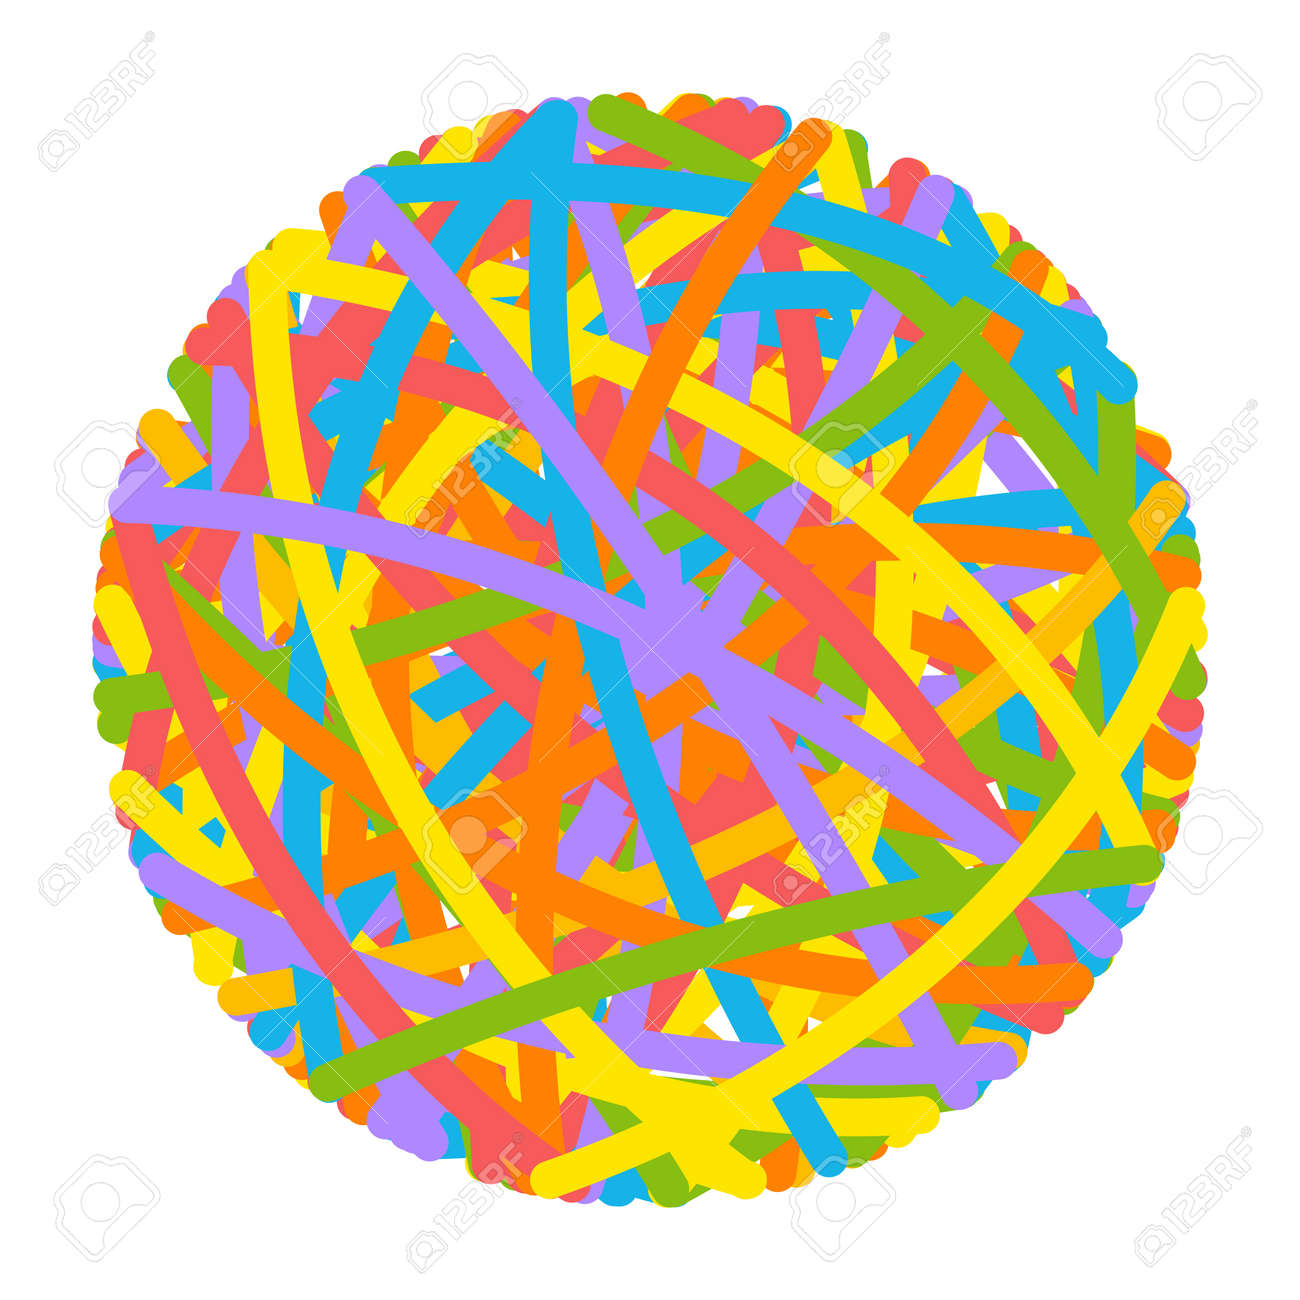 Rubber band ball vector cartoon illustration isolated on a white background. - 172749456